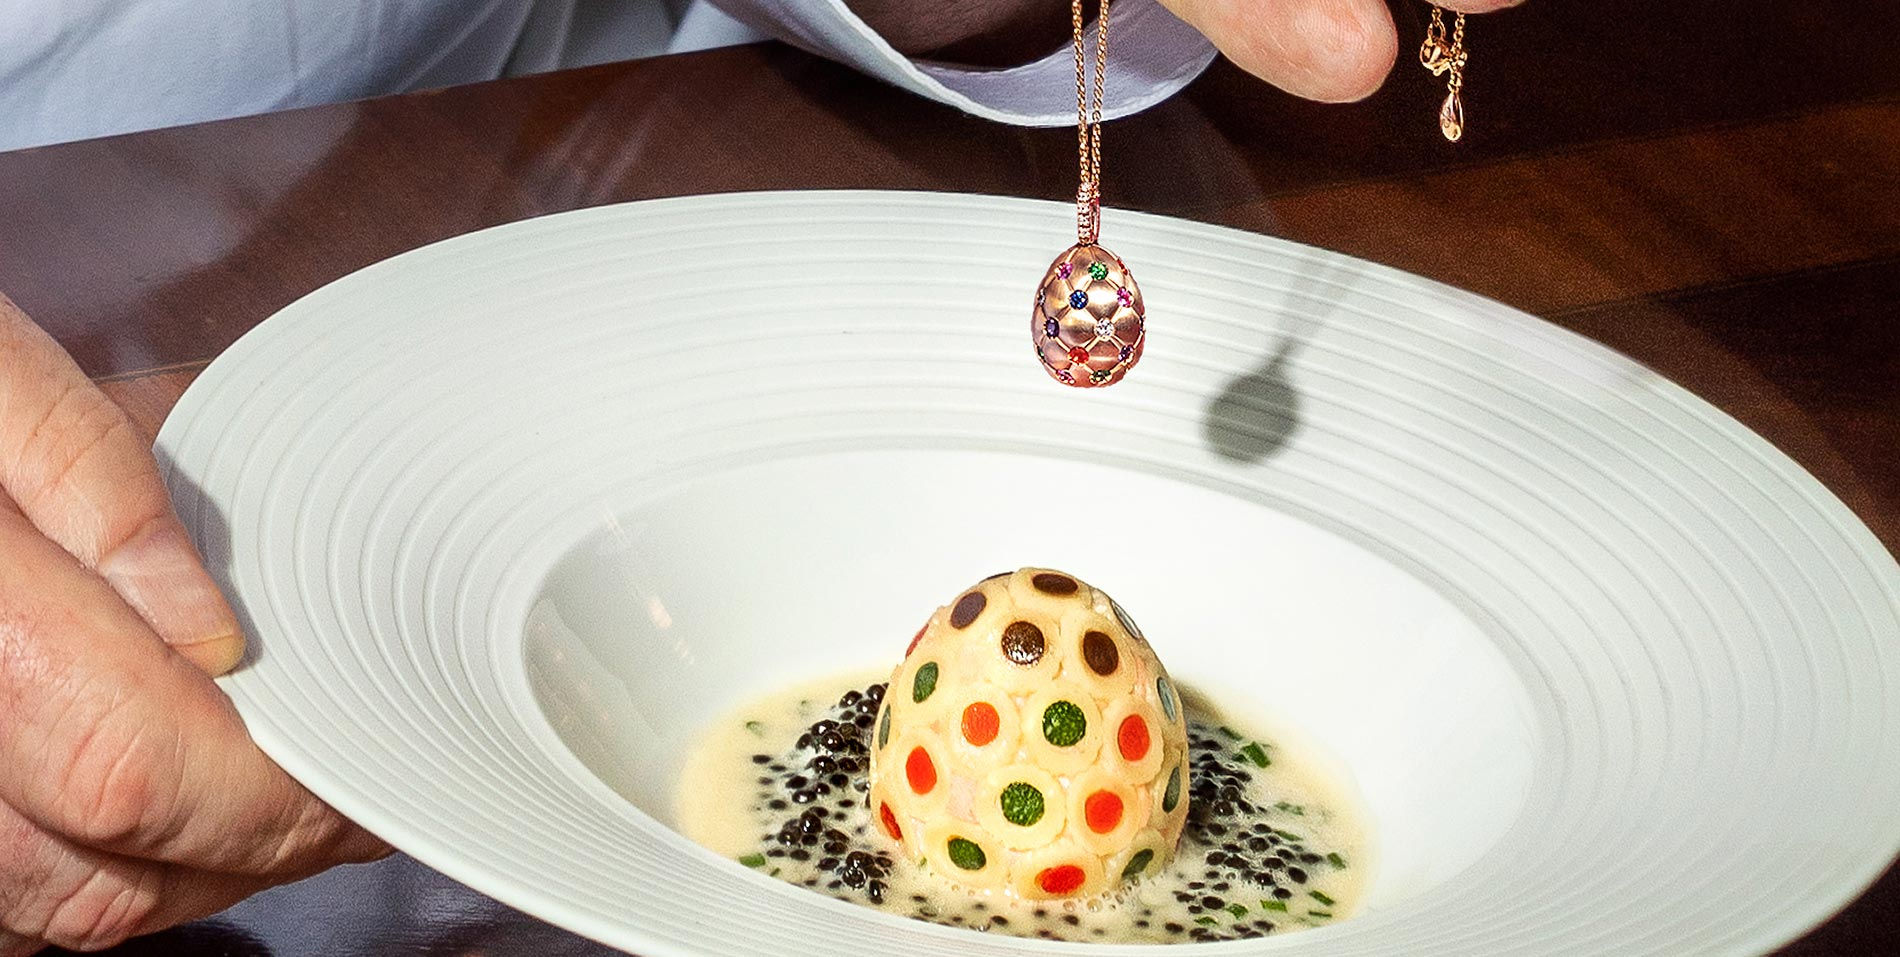 Fabergé and Ritz egg dish